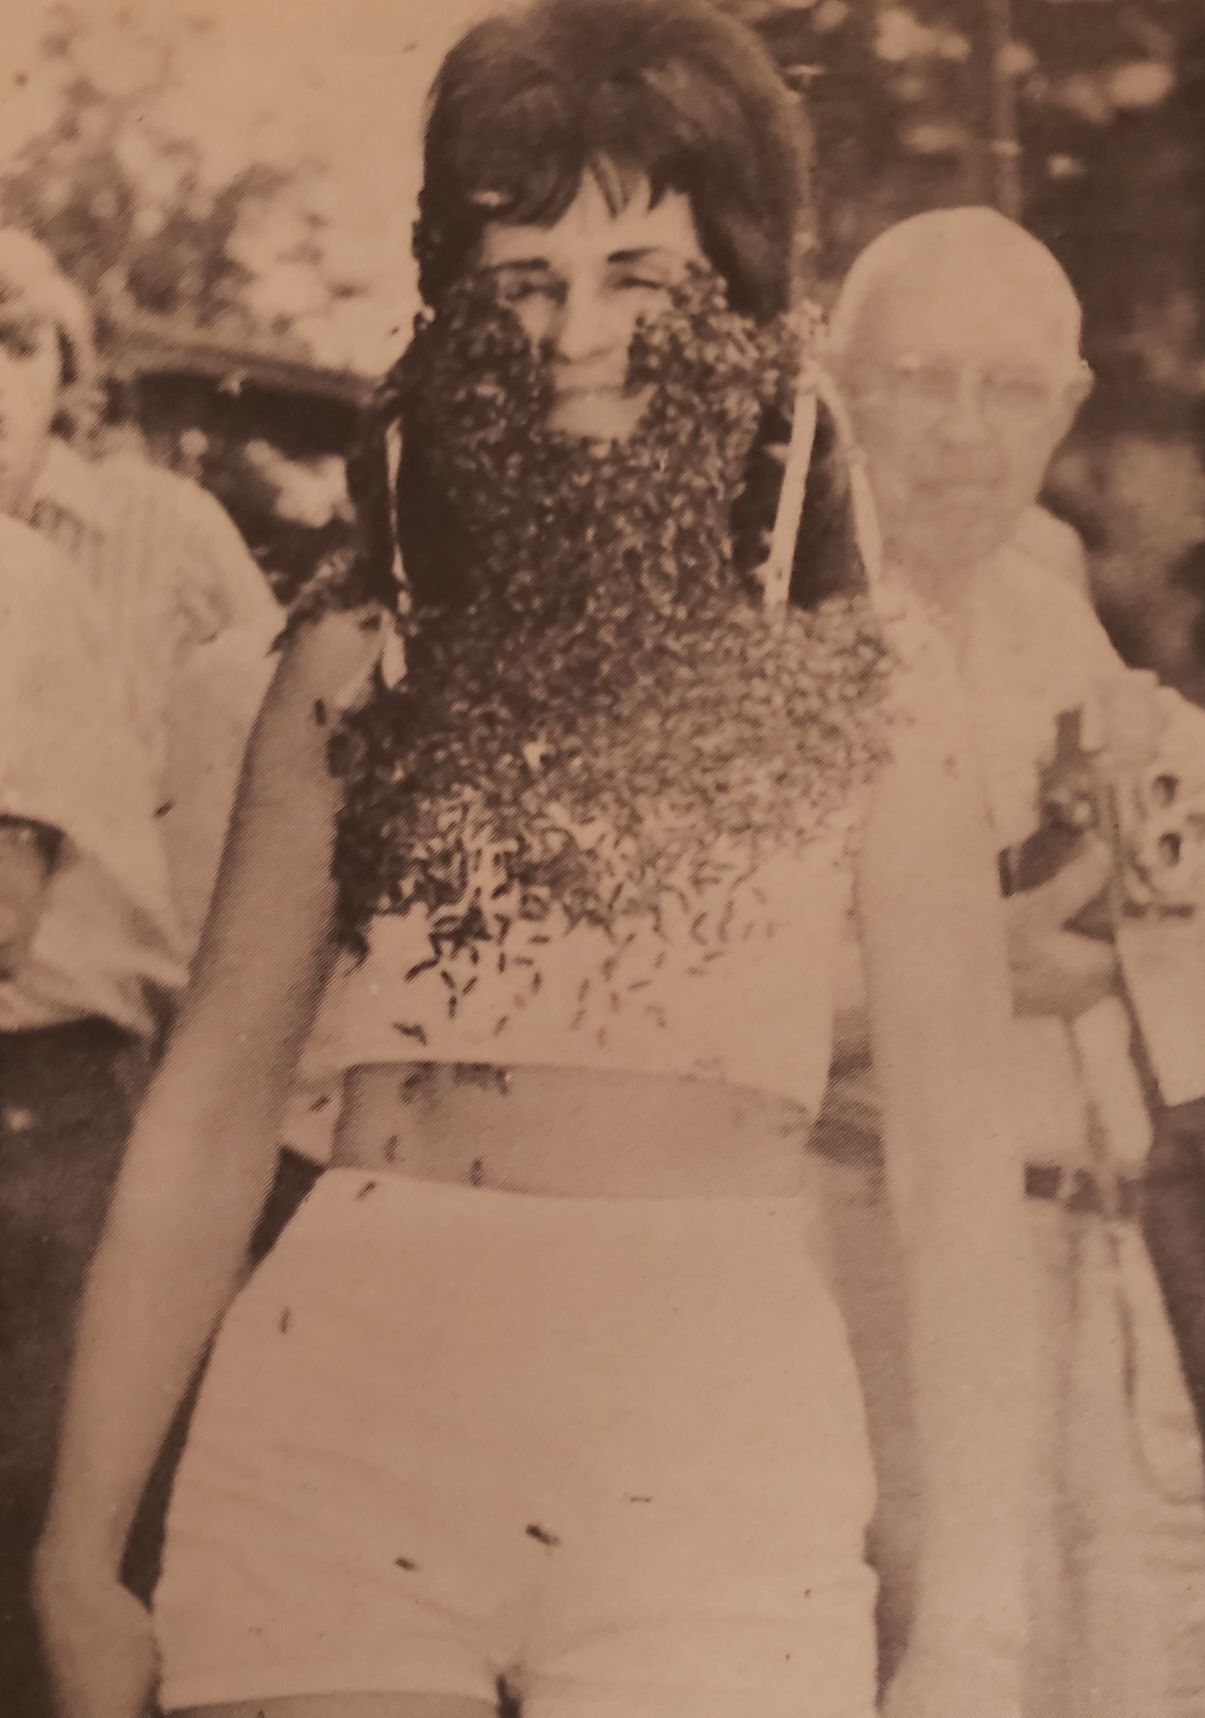 Virginia Presnell Harmon with a bee beard in 1971.